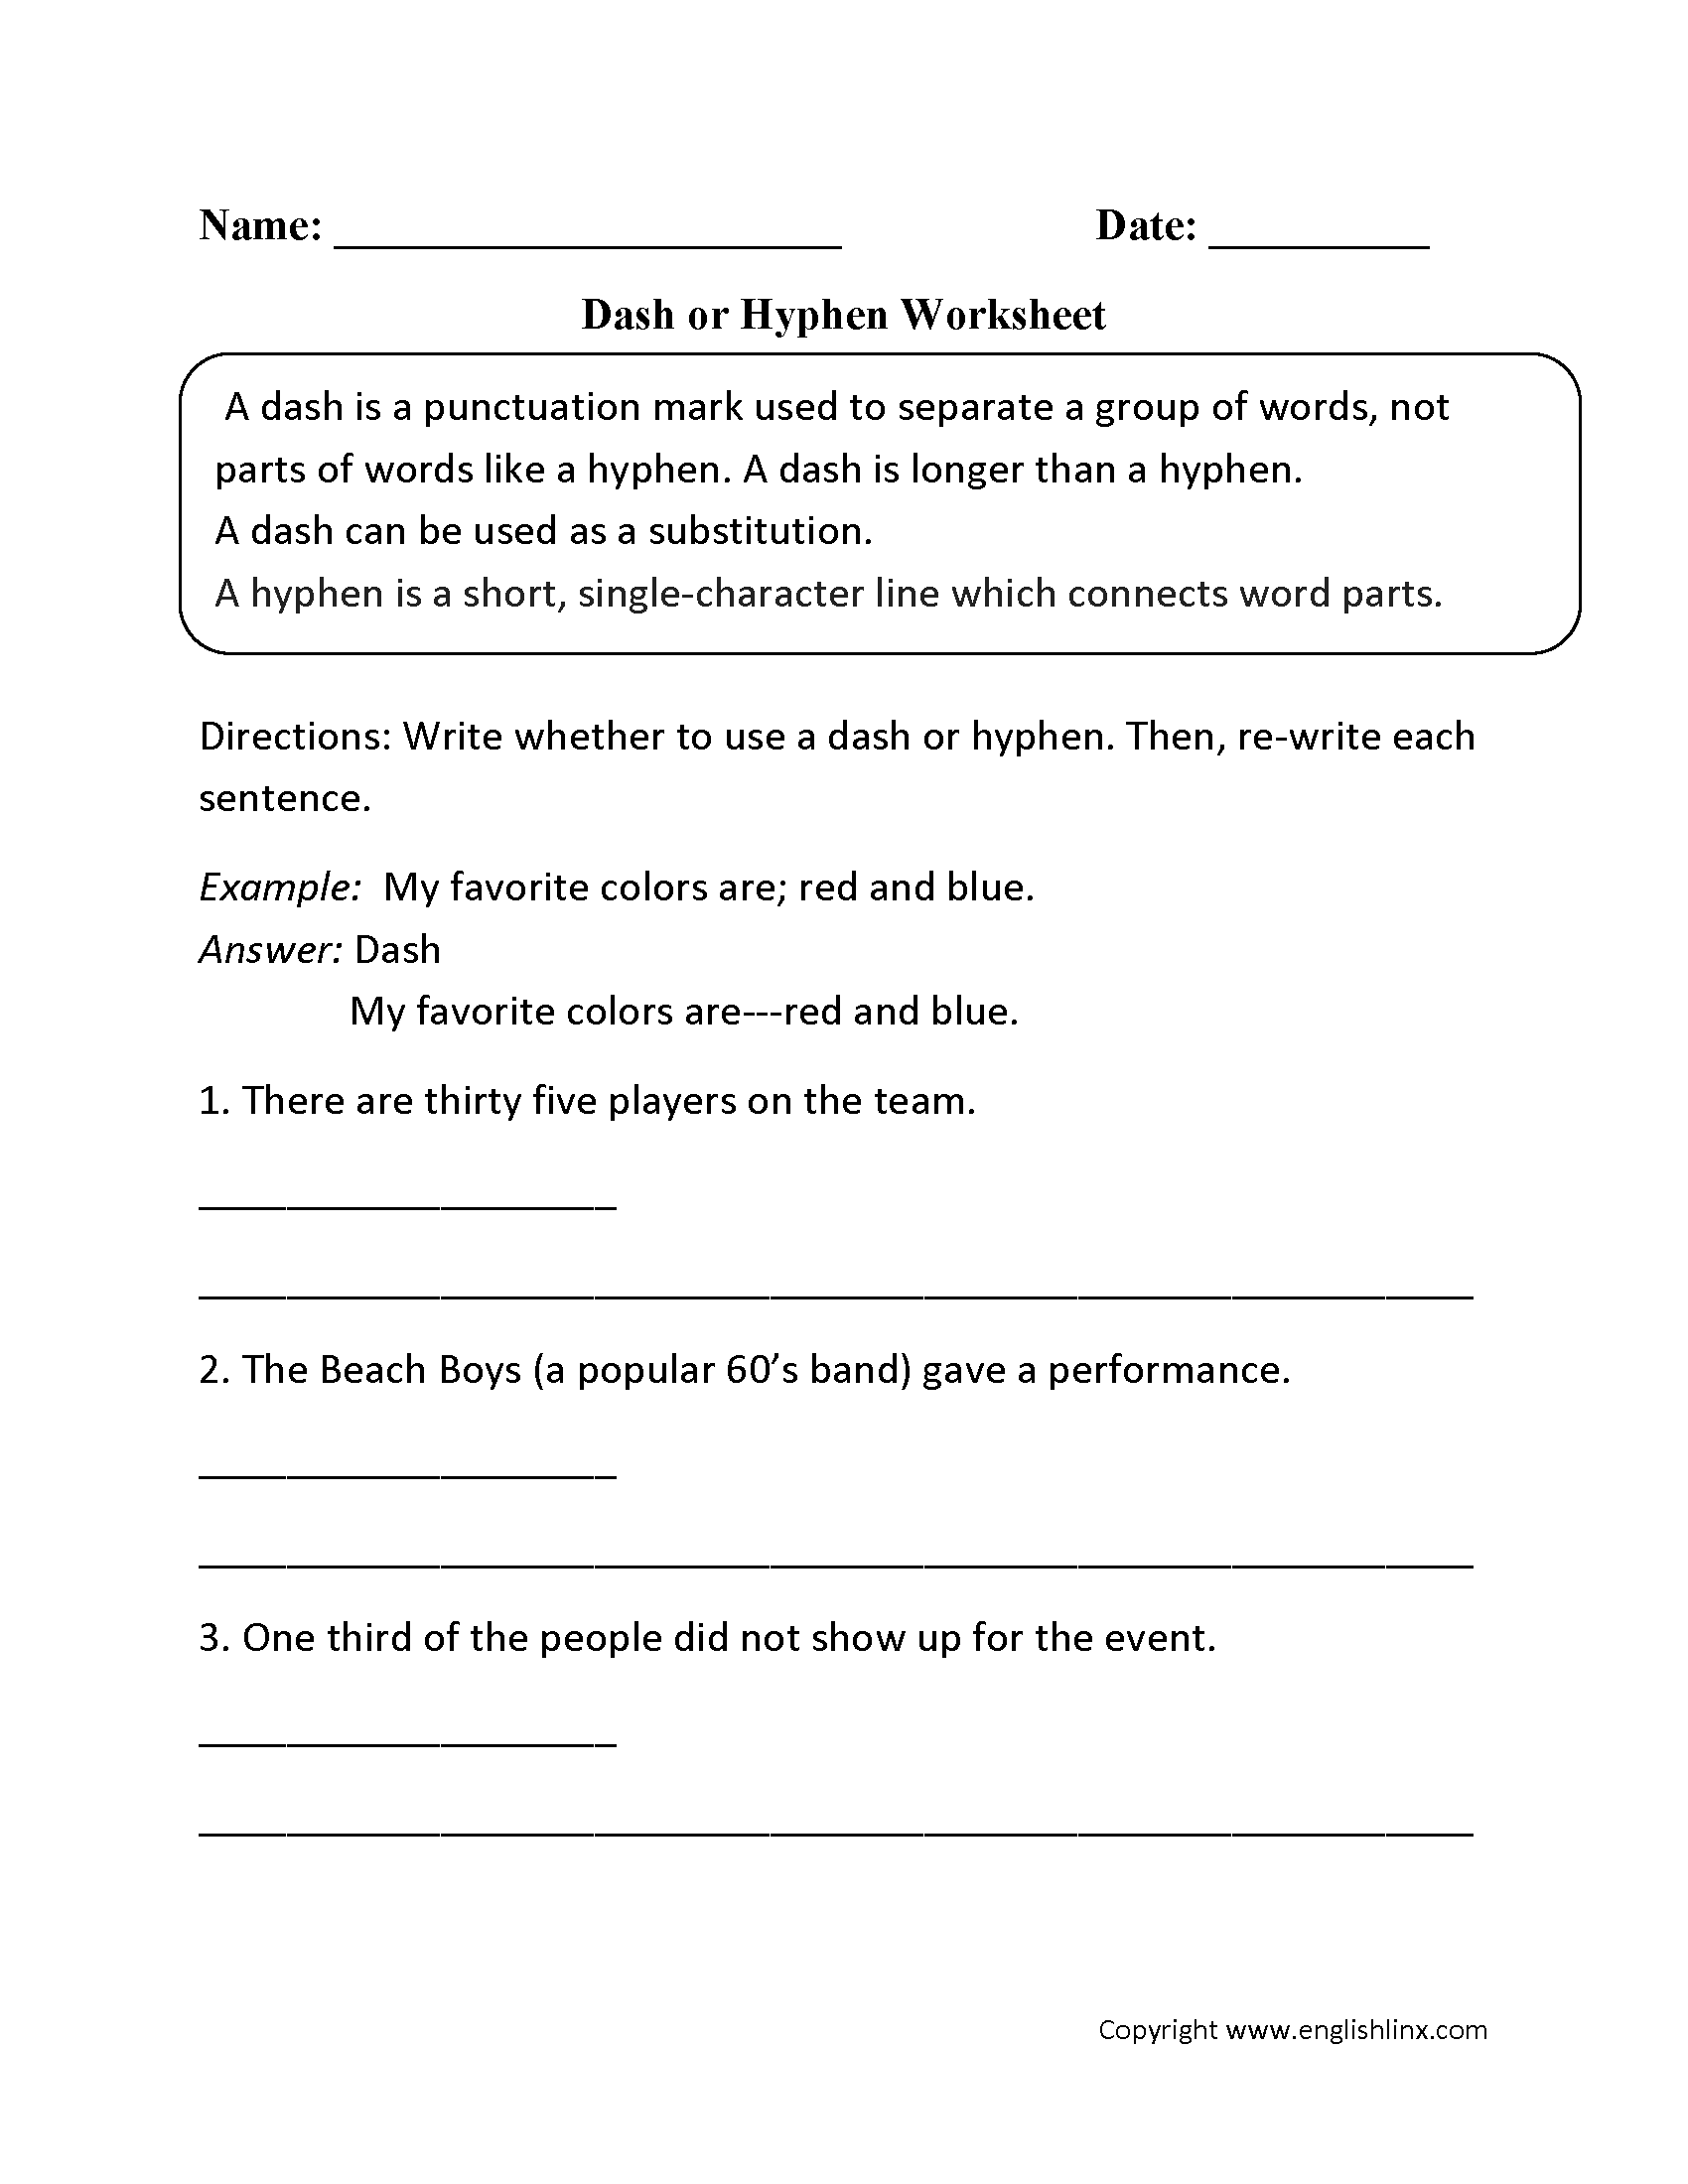 Grammar Worksheet For Dash